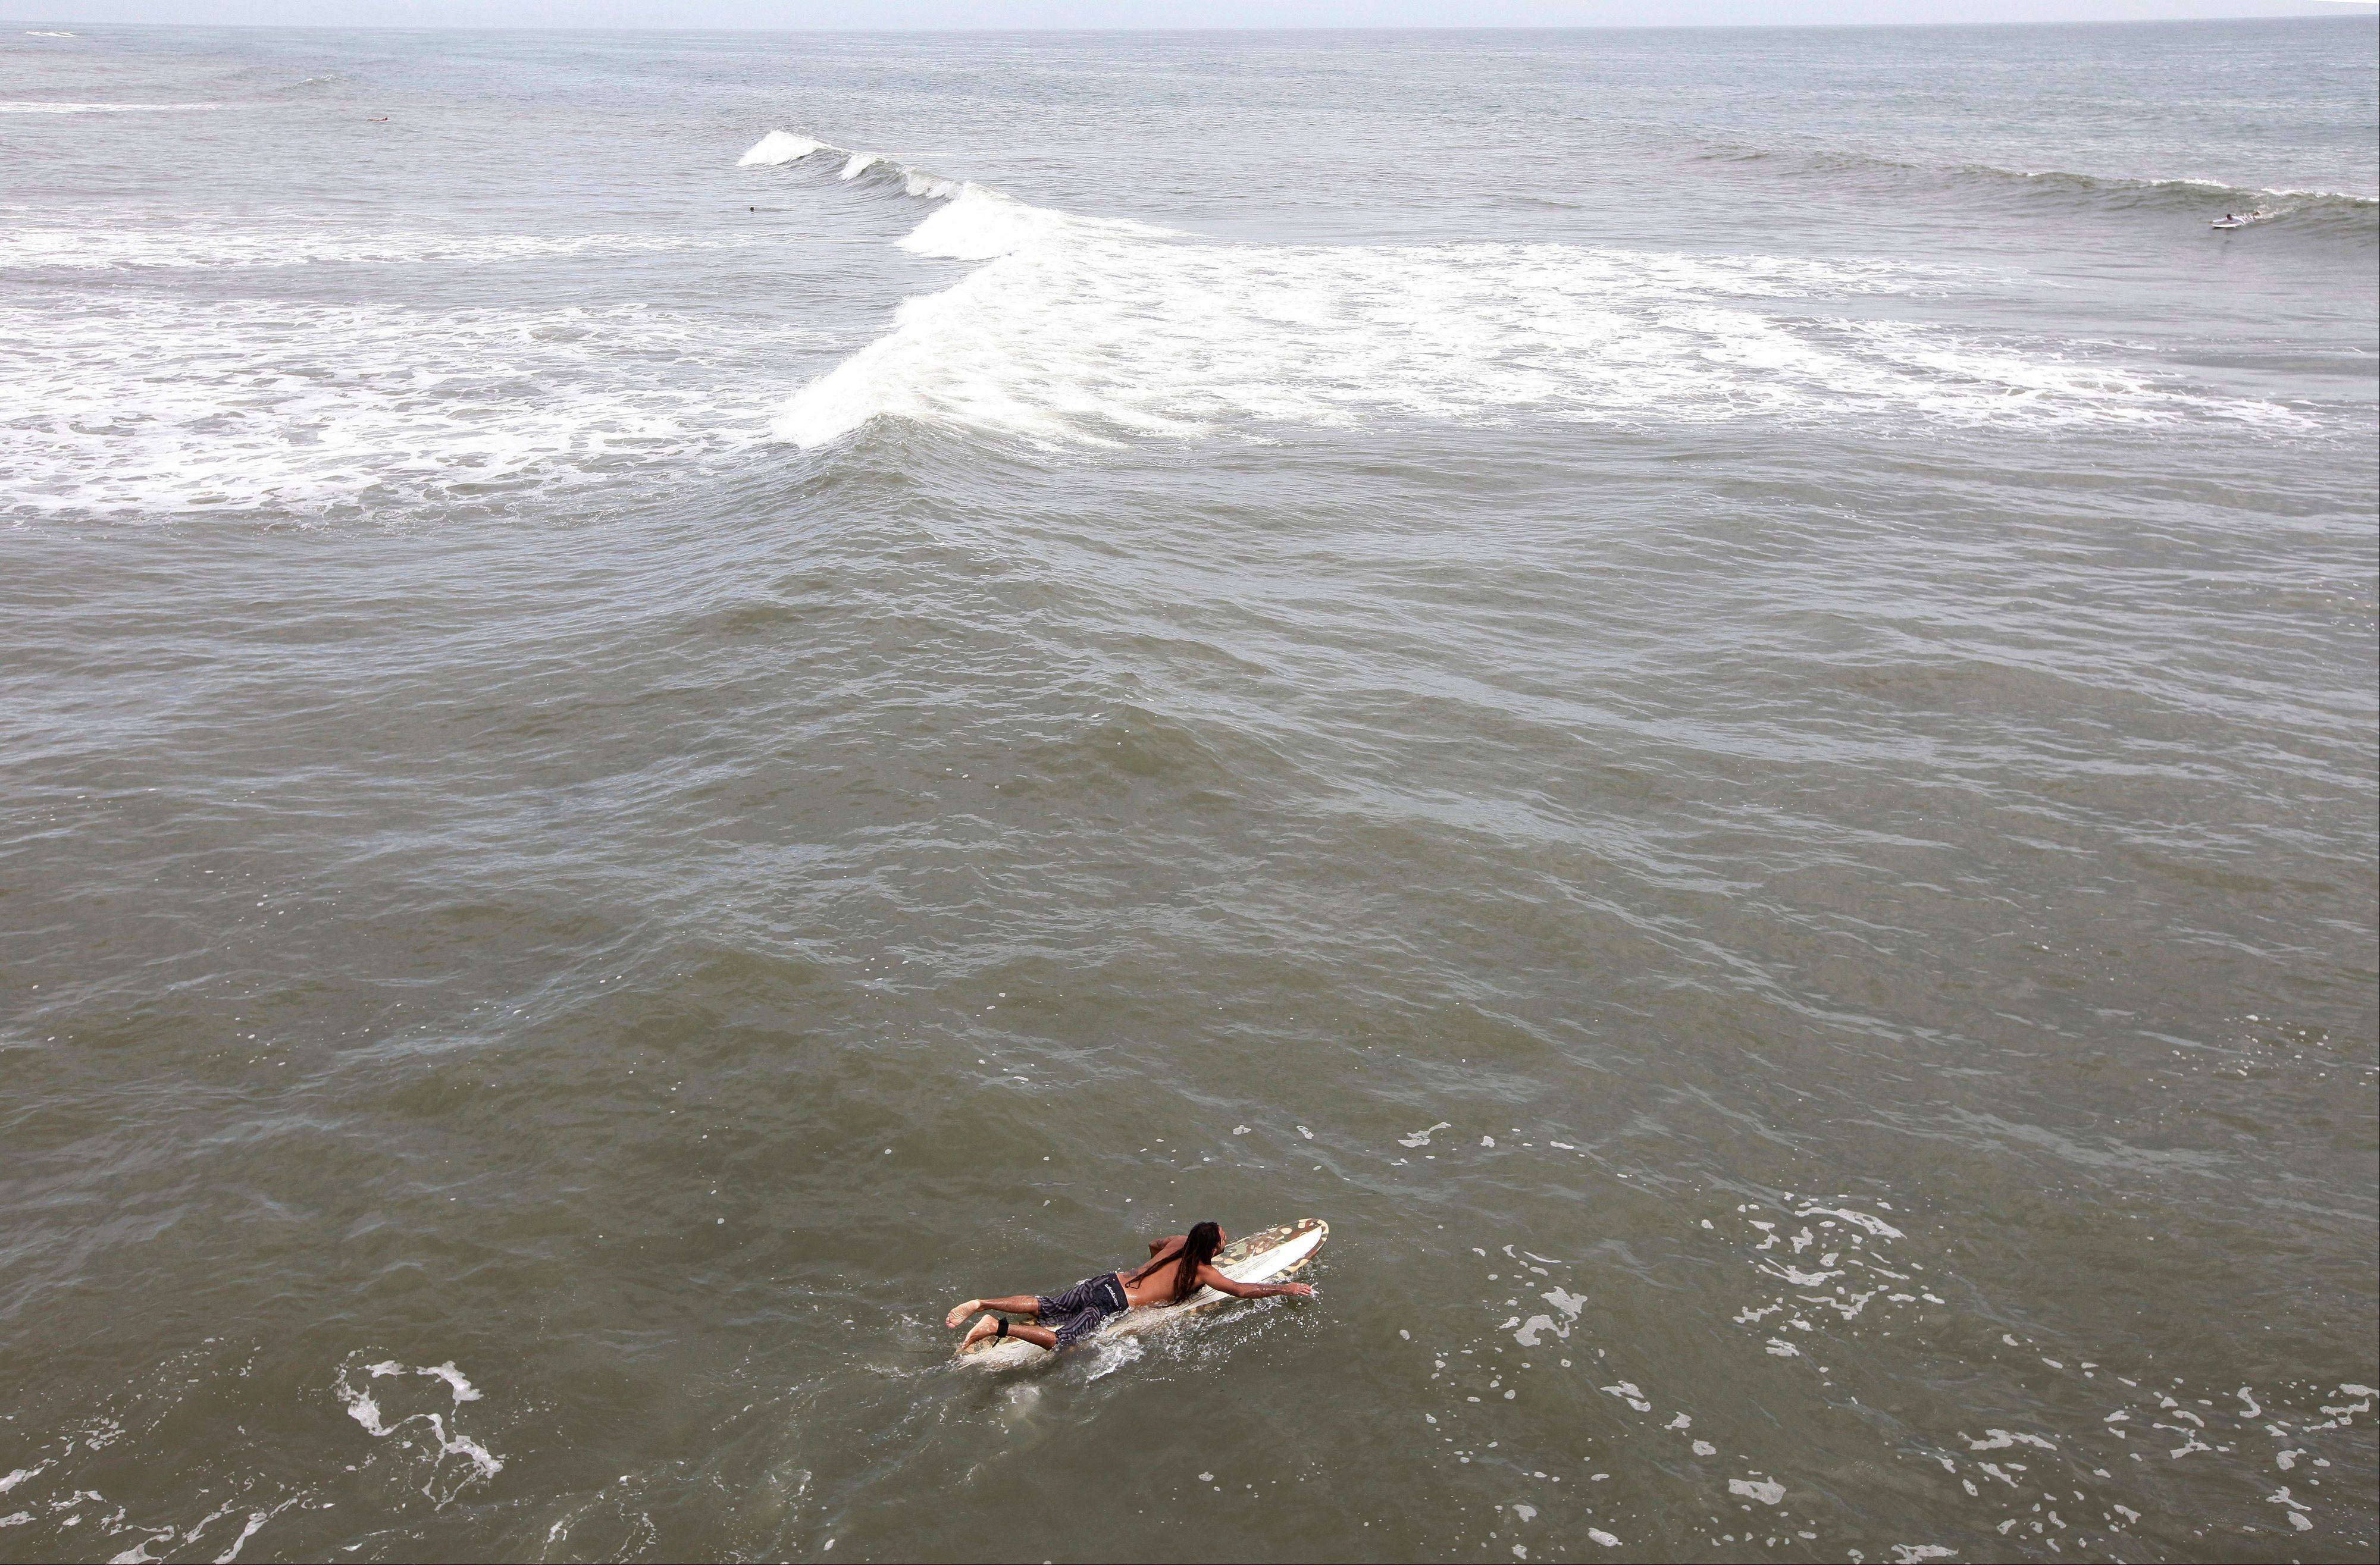 A surfer paddles out hoping to catch some big waves ahead of the arrival of Hurricane Irene in Nags Head, N.C., Friday, Aug. 26, 2011 on North Carolina's Outer Banks.